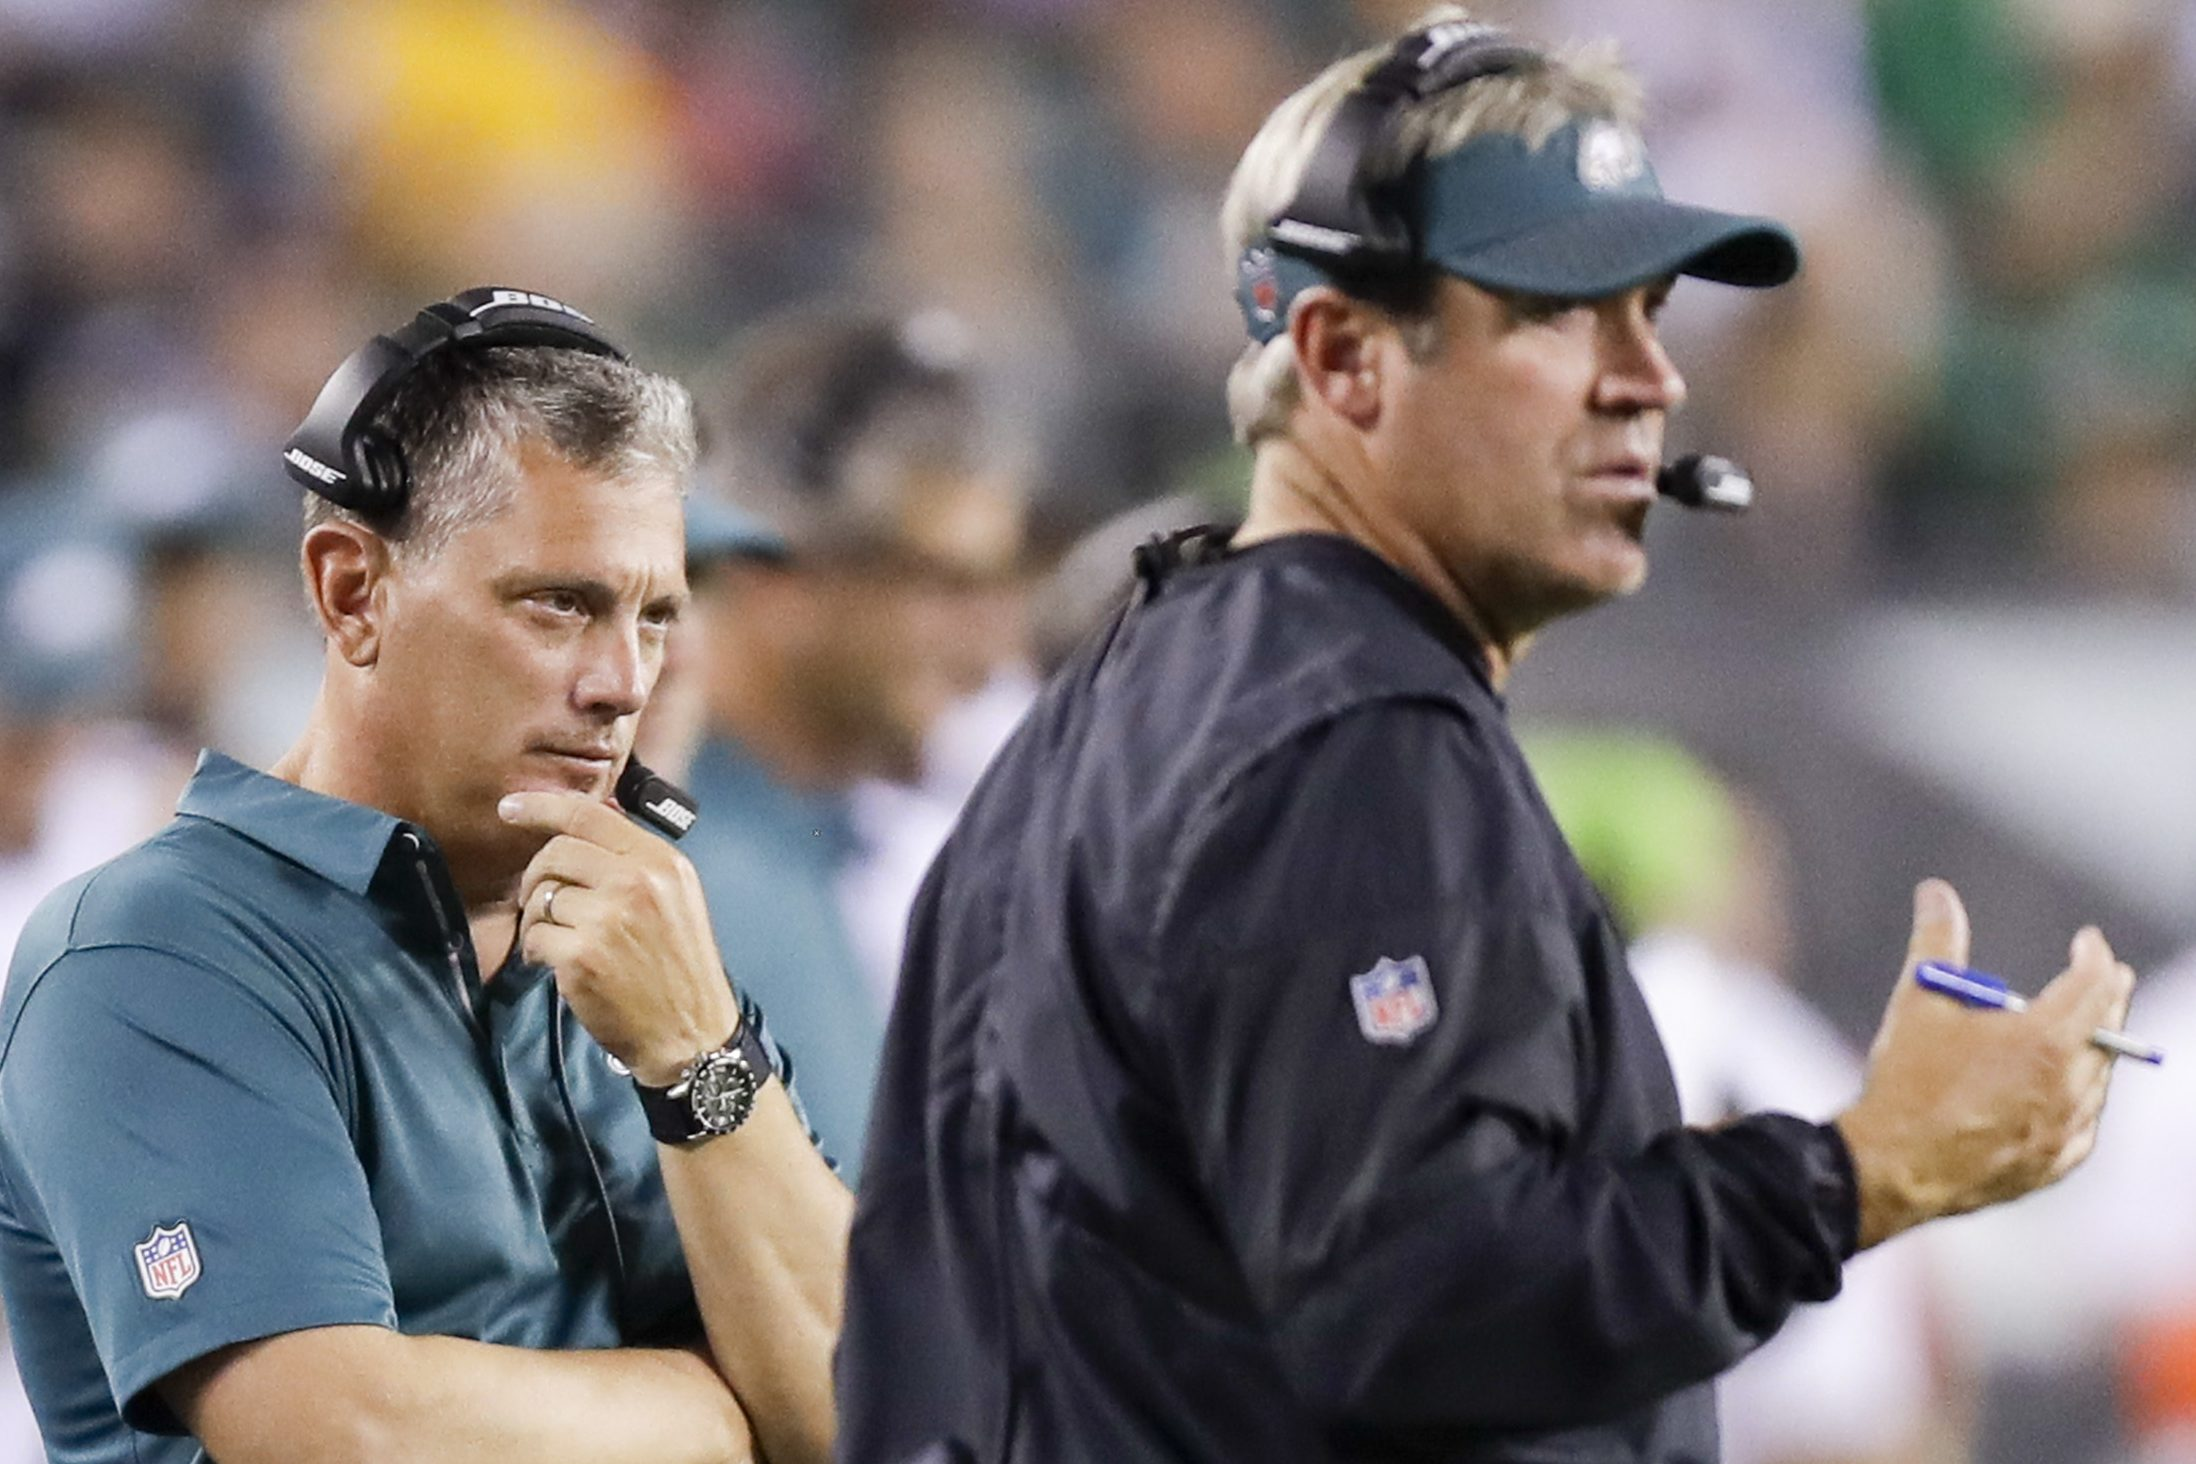 Eagles defensive coordinator Jim Schwartz was the only coach to draw praise from Mike Lombardi.